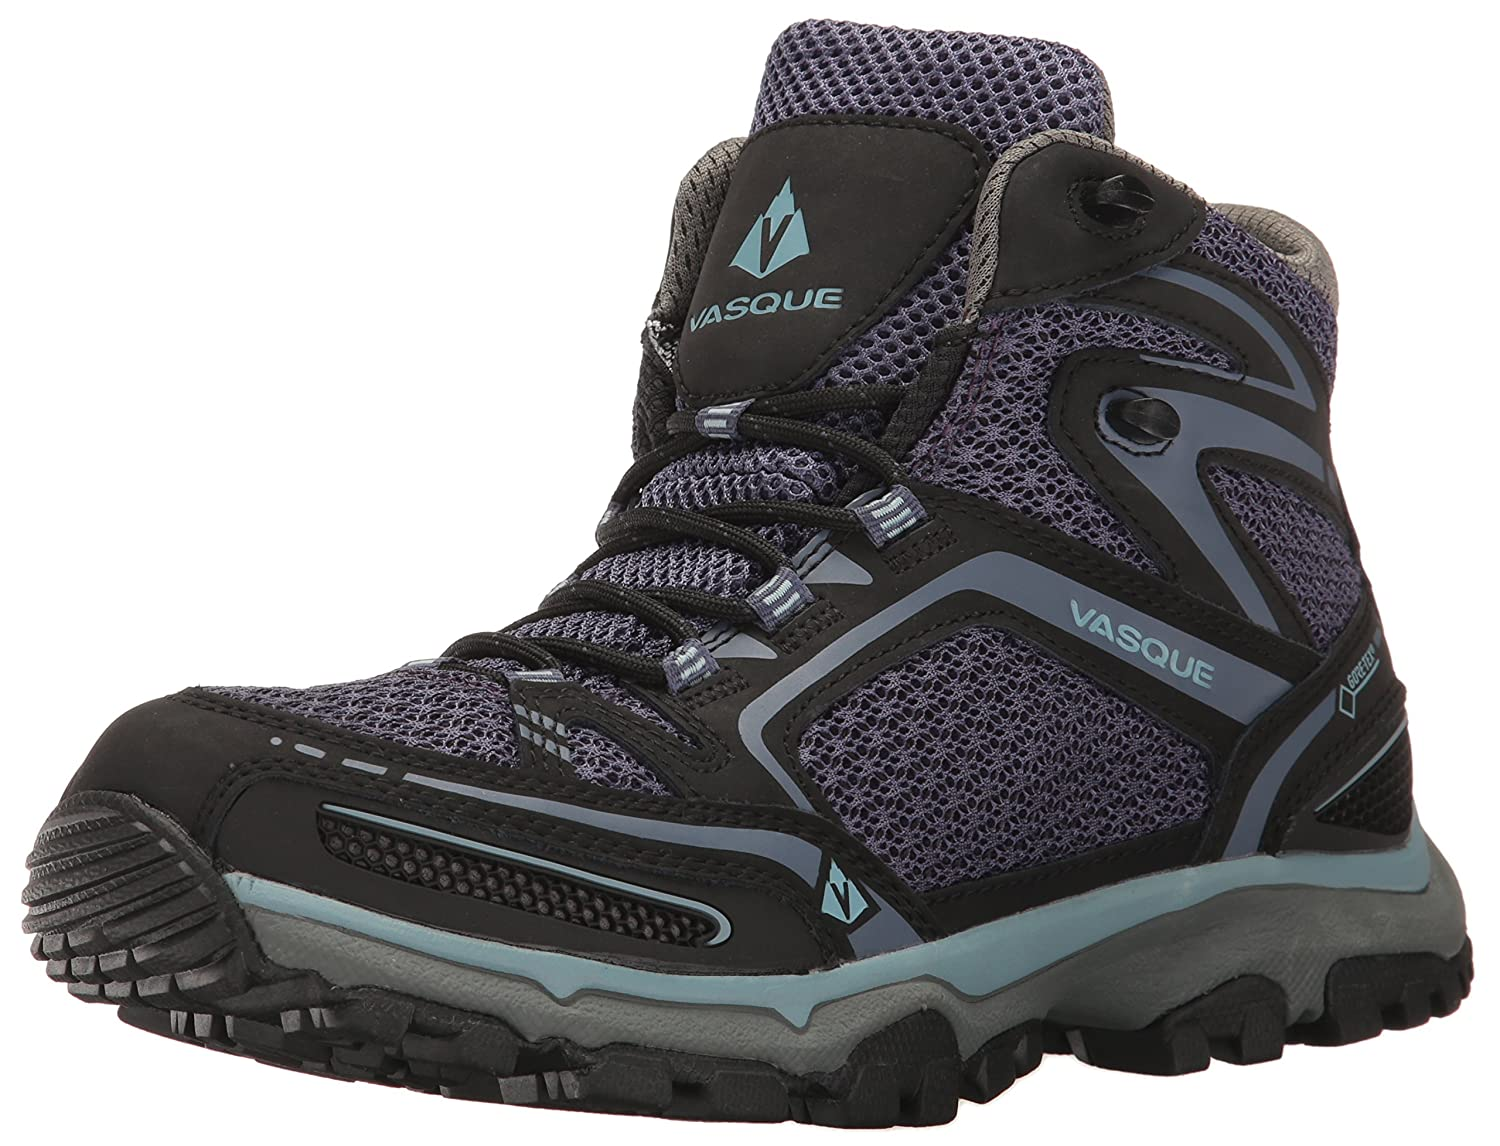 Vasque Women's Inhaler Ii GTX Hiking Boot B01HTP17S2 7.5 B(M) US|Crown Blue/Stone Blue